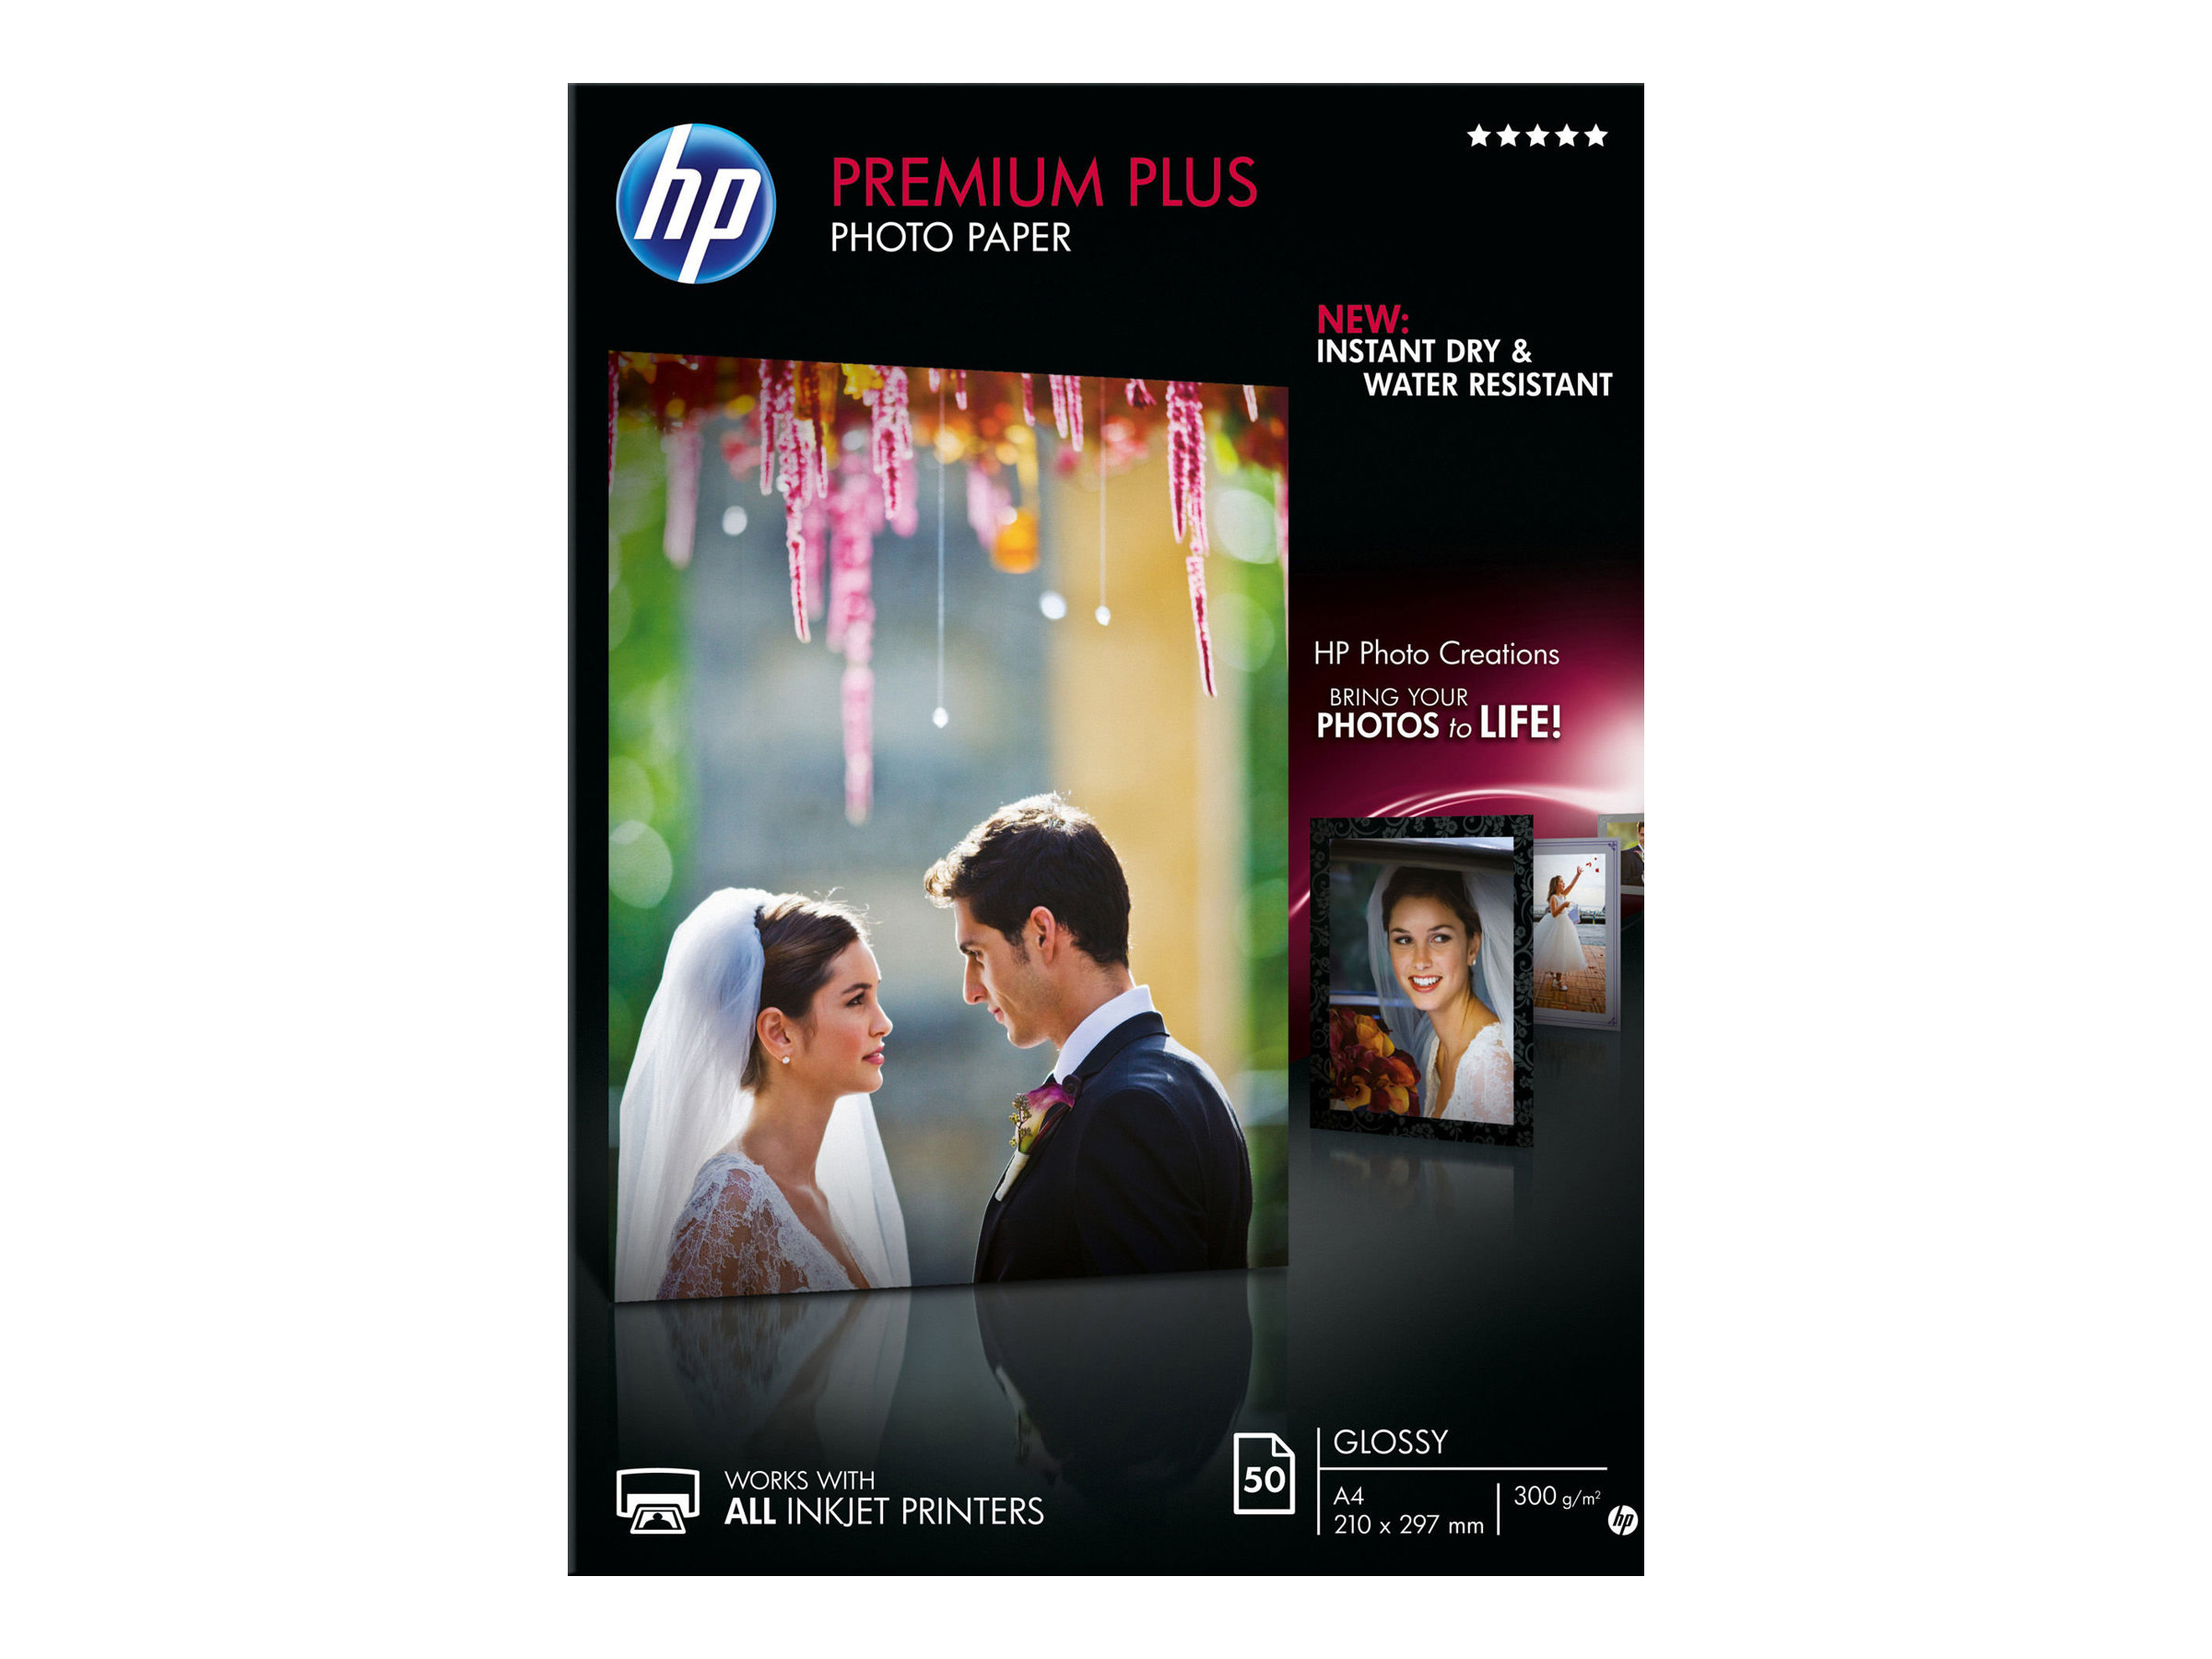 HP Premium Plus Photo Paper - Glänzend - A4 (210 x 297 mm)